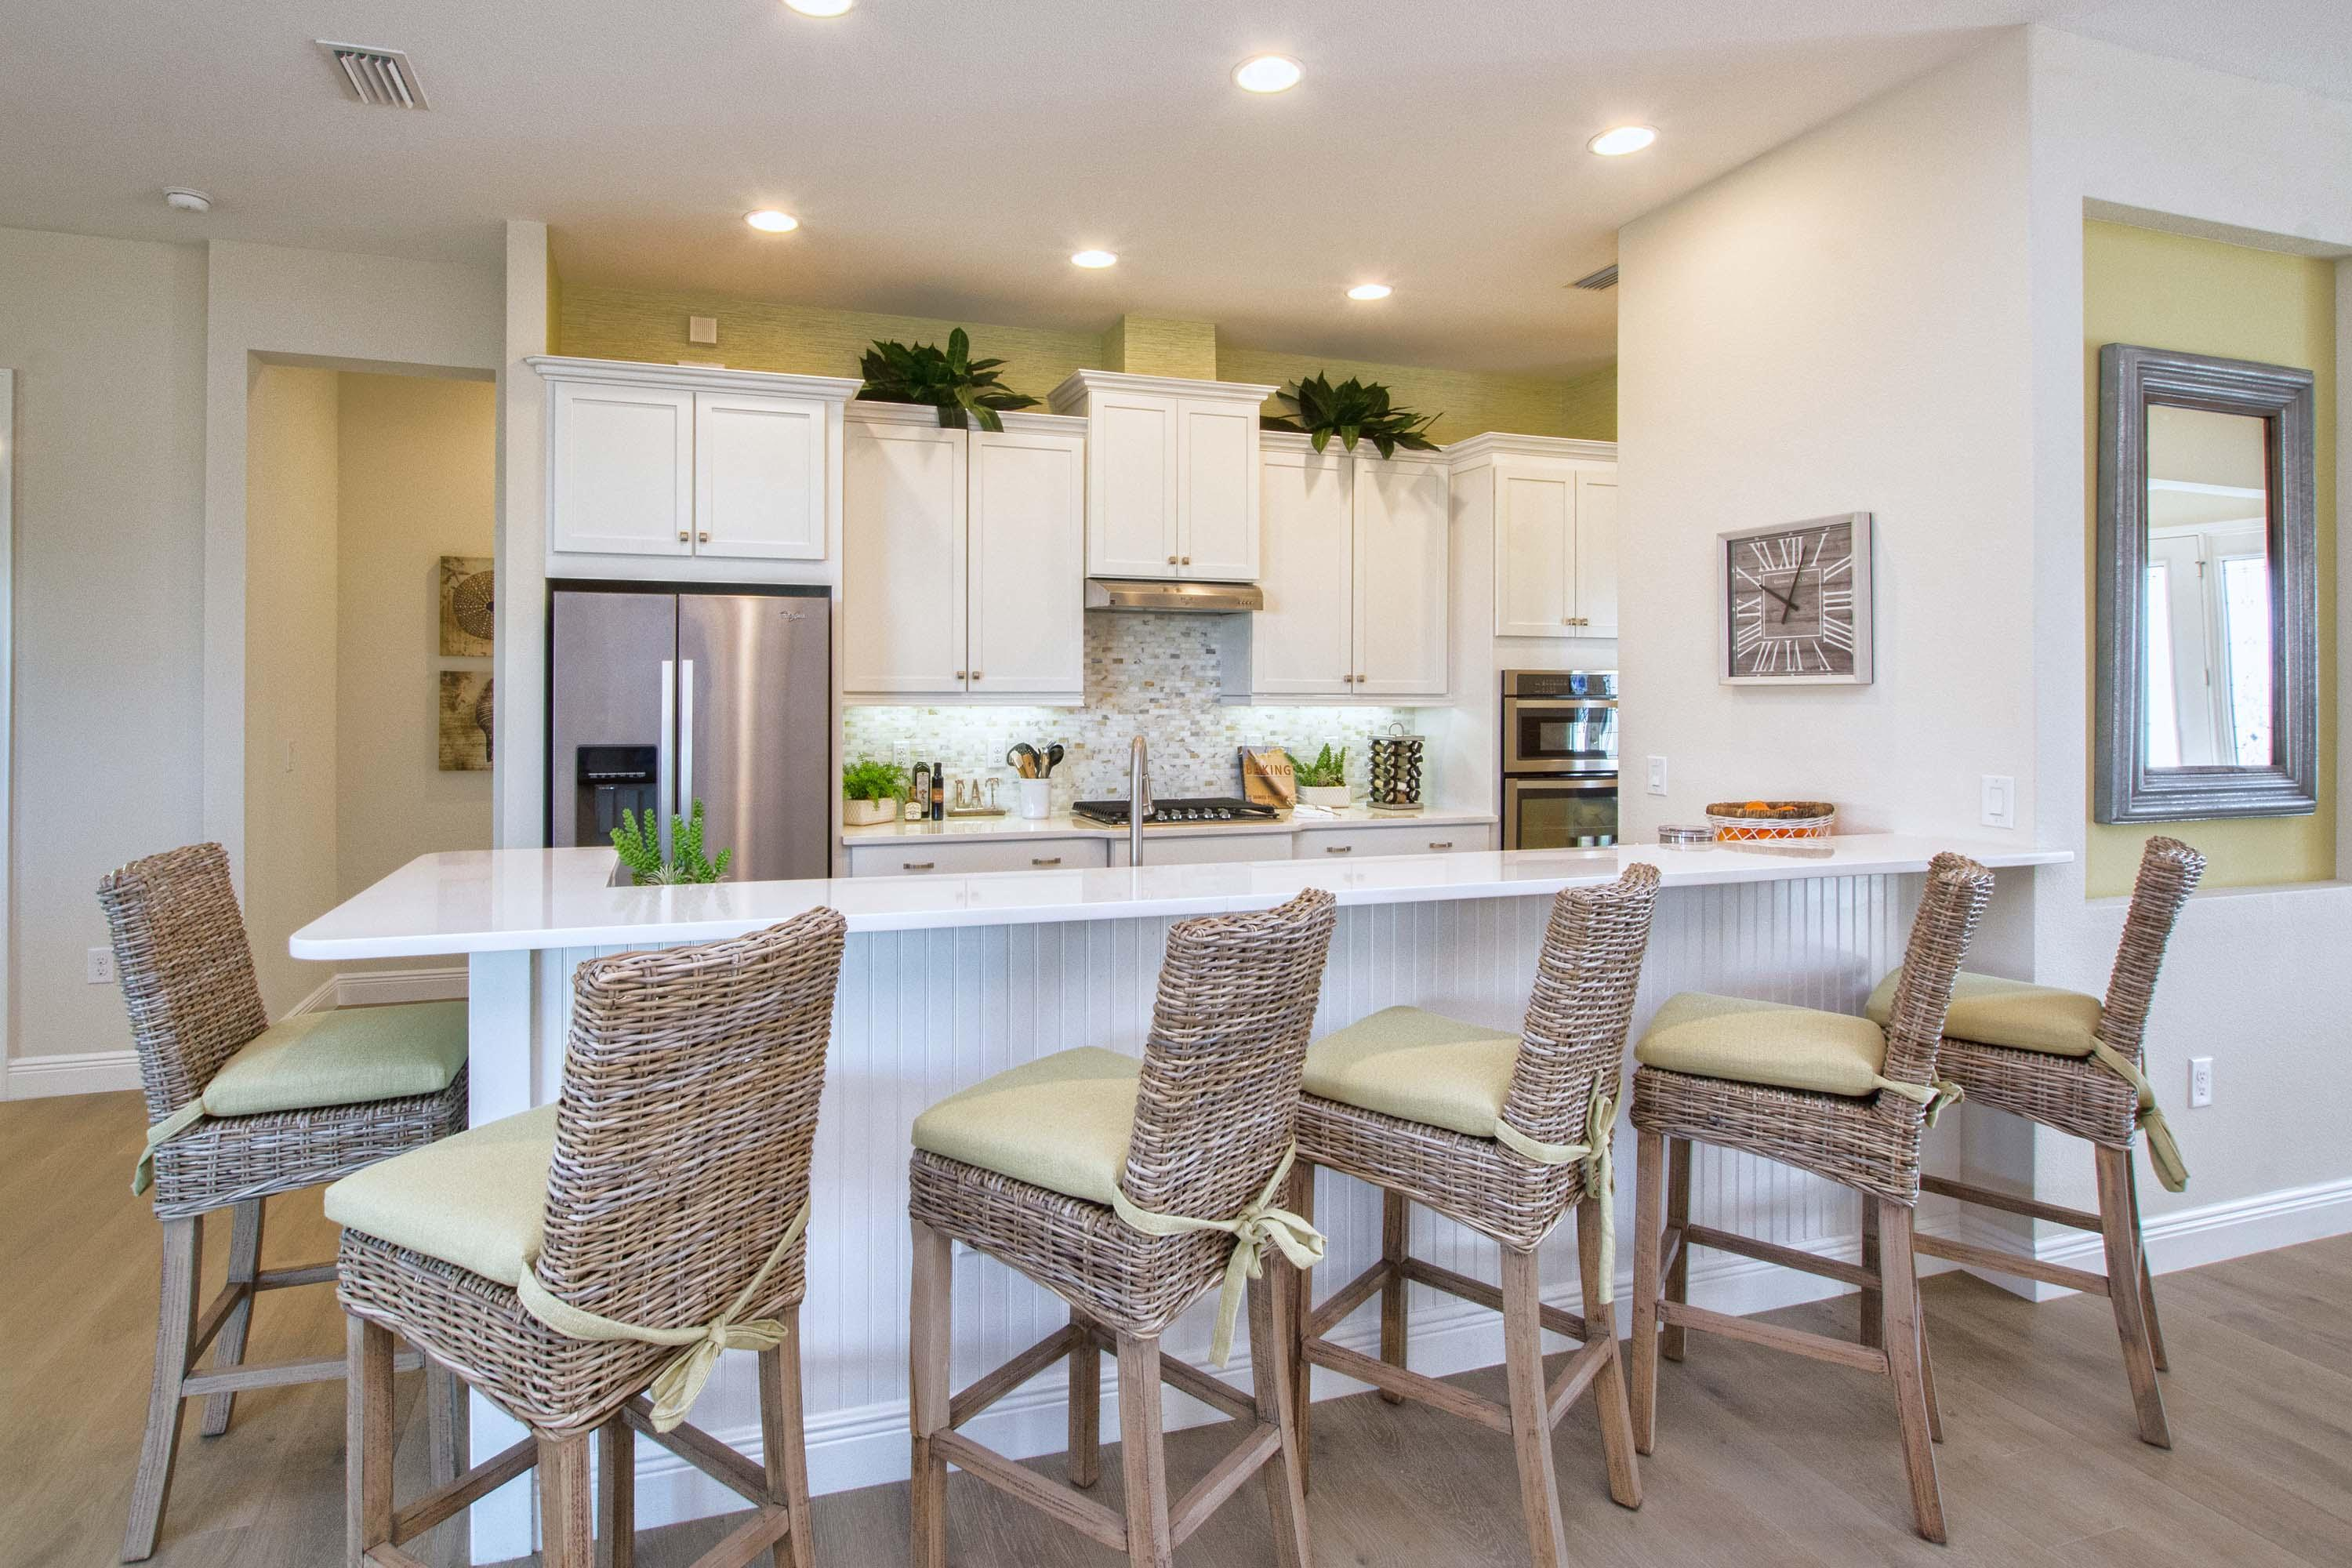 Kitchen featured in the Palm Island By Medallion Home in Orlando, FL